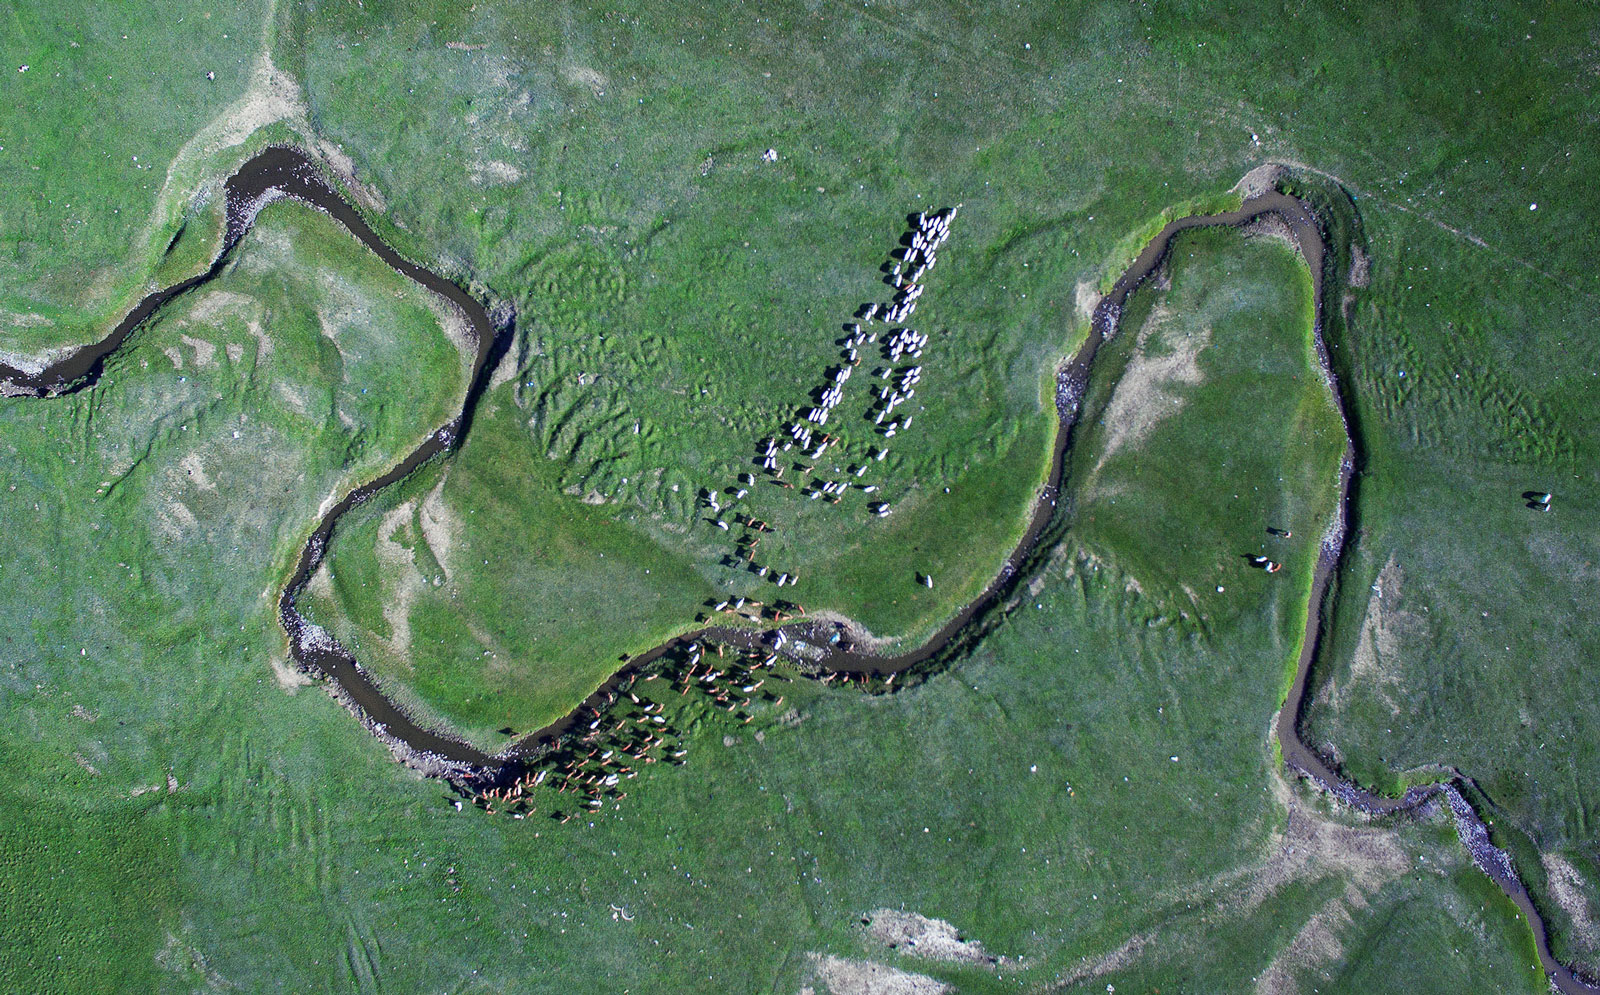 Sheep and goats graze near a stream in this aerial photograph taken in Tuv province, Mongolia